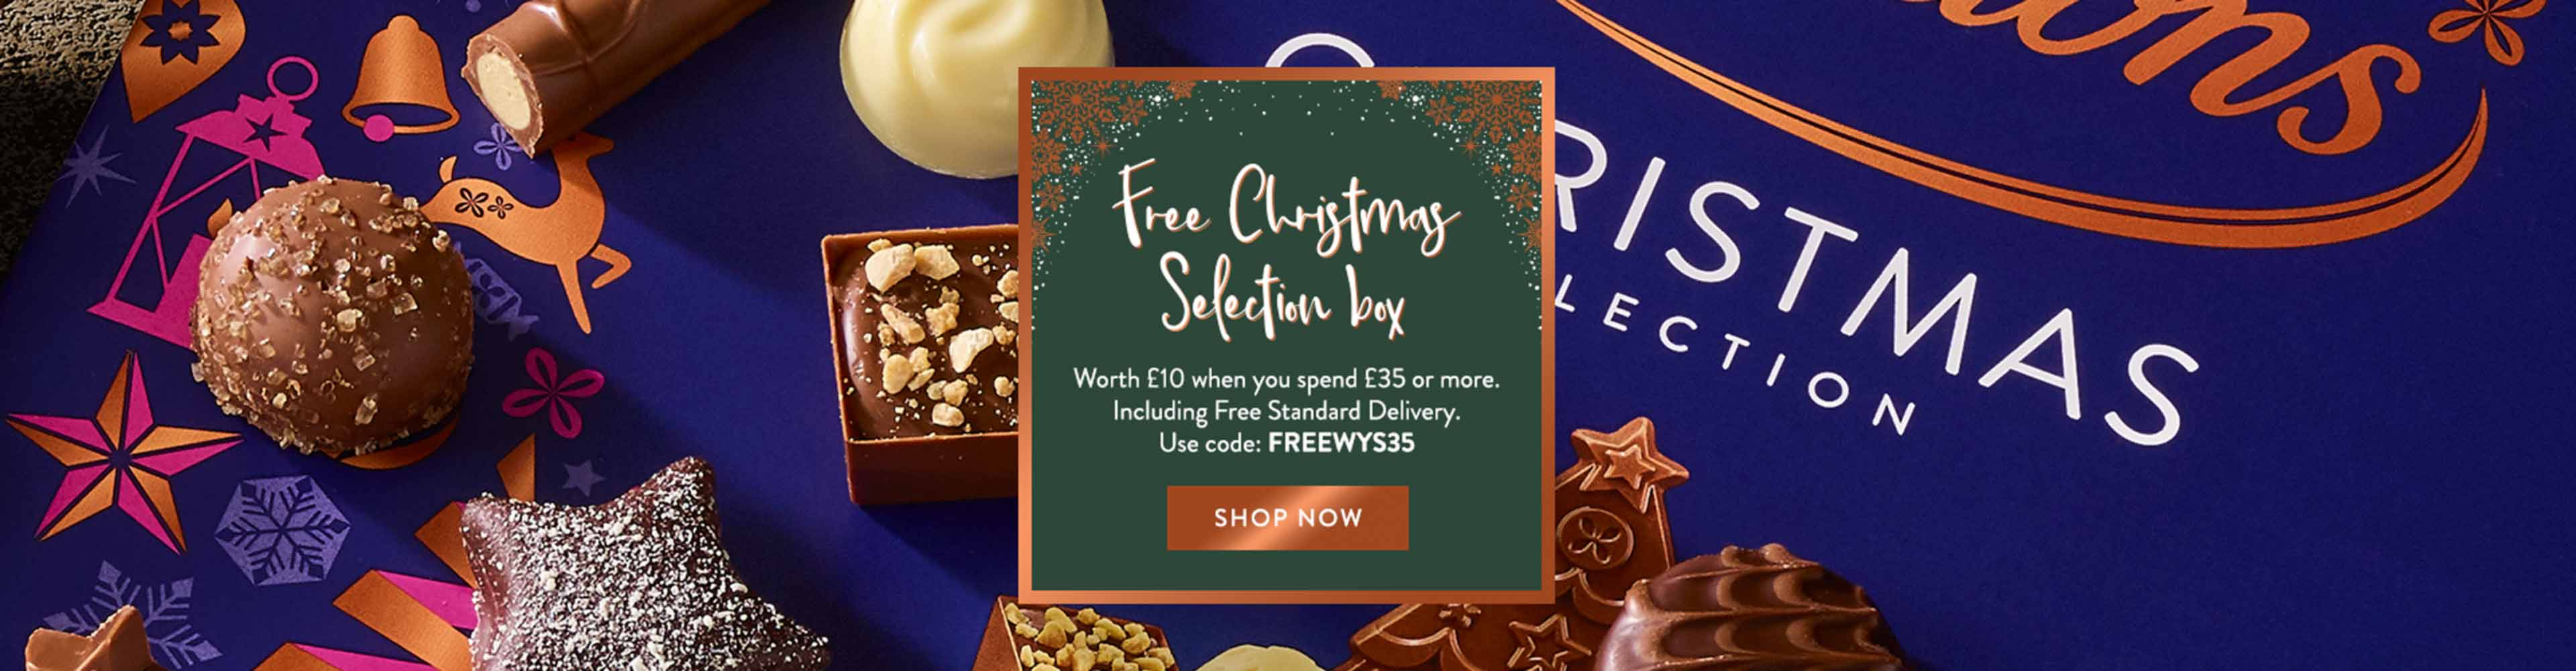 this is a delicious selection of 31 festive chocolates for you to enjoy at Christmas